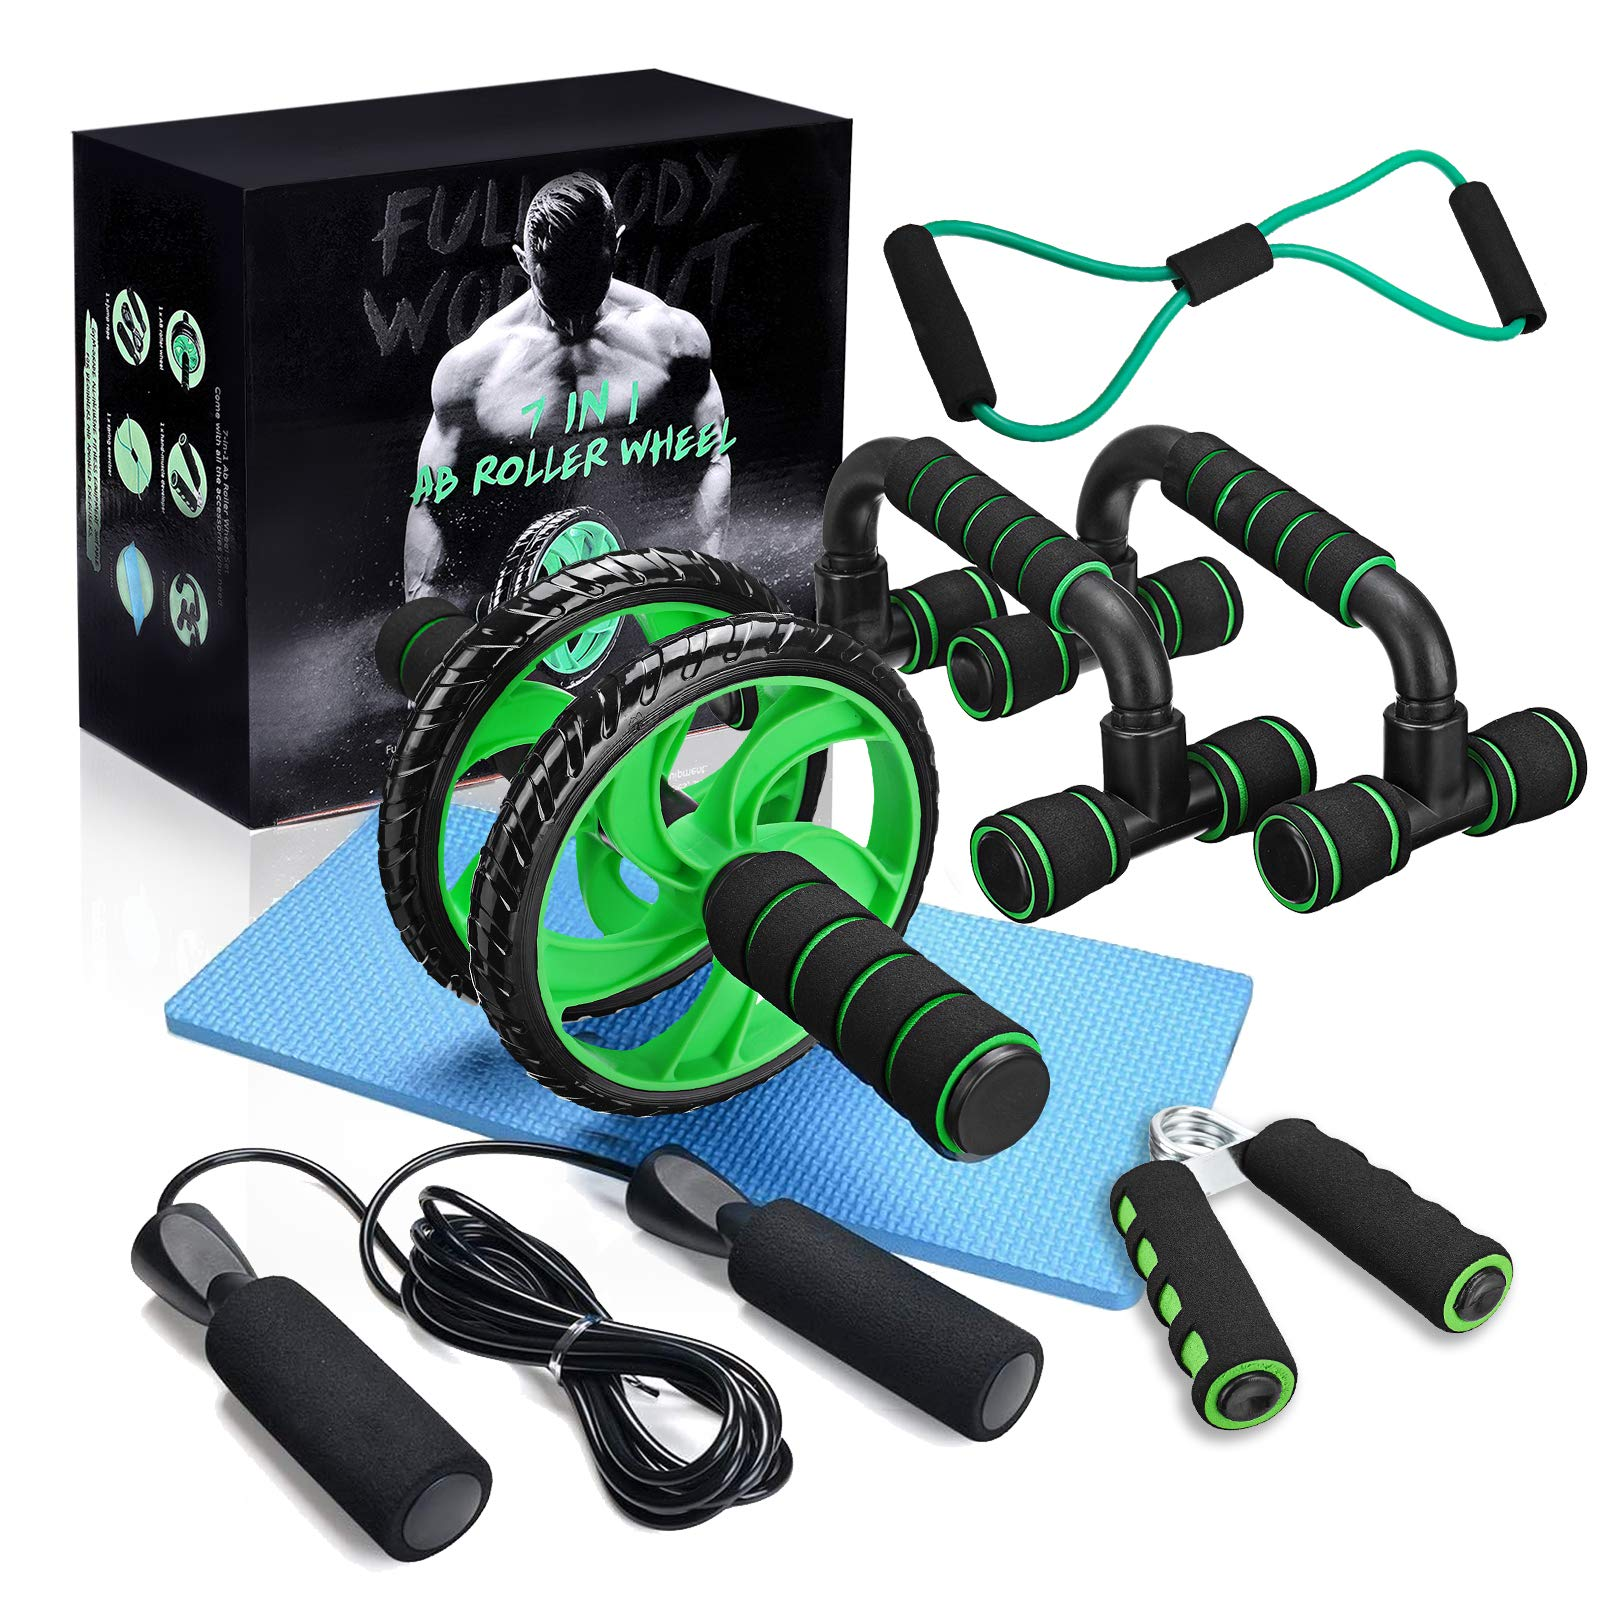 gracosy Sports Ab Roller Wheel 6-in-1 Ab Roller Kit with Yoga Mat